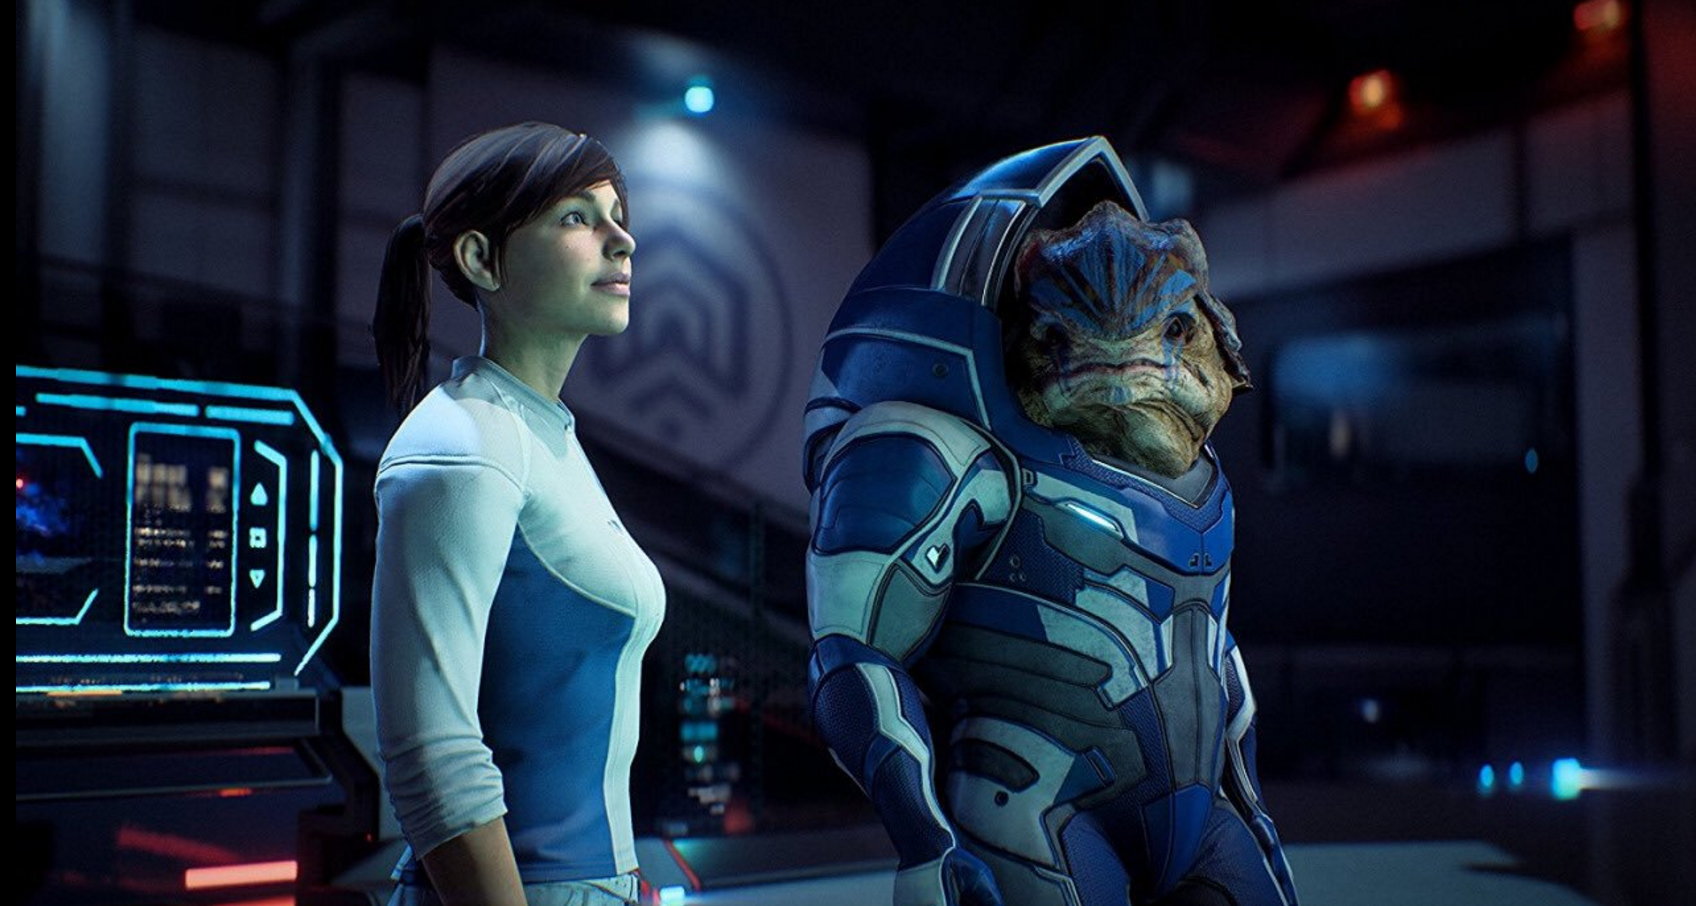 Mass Effect Andromeda Update 110 Is Over 900mb Game Ps4 Pro And 4k Introducing Points